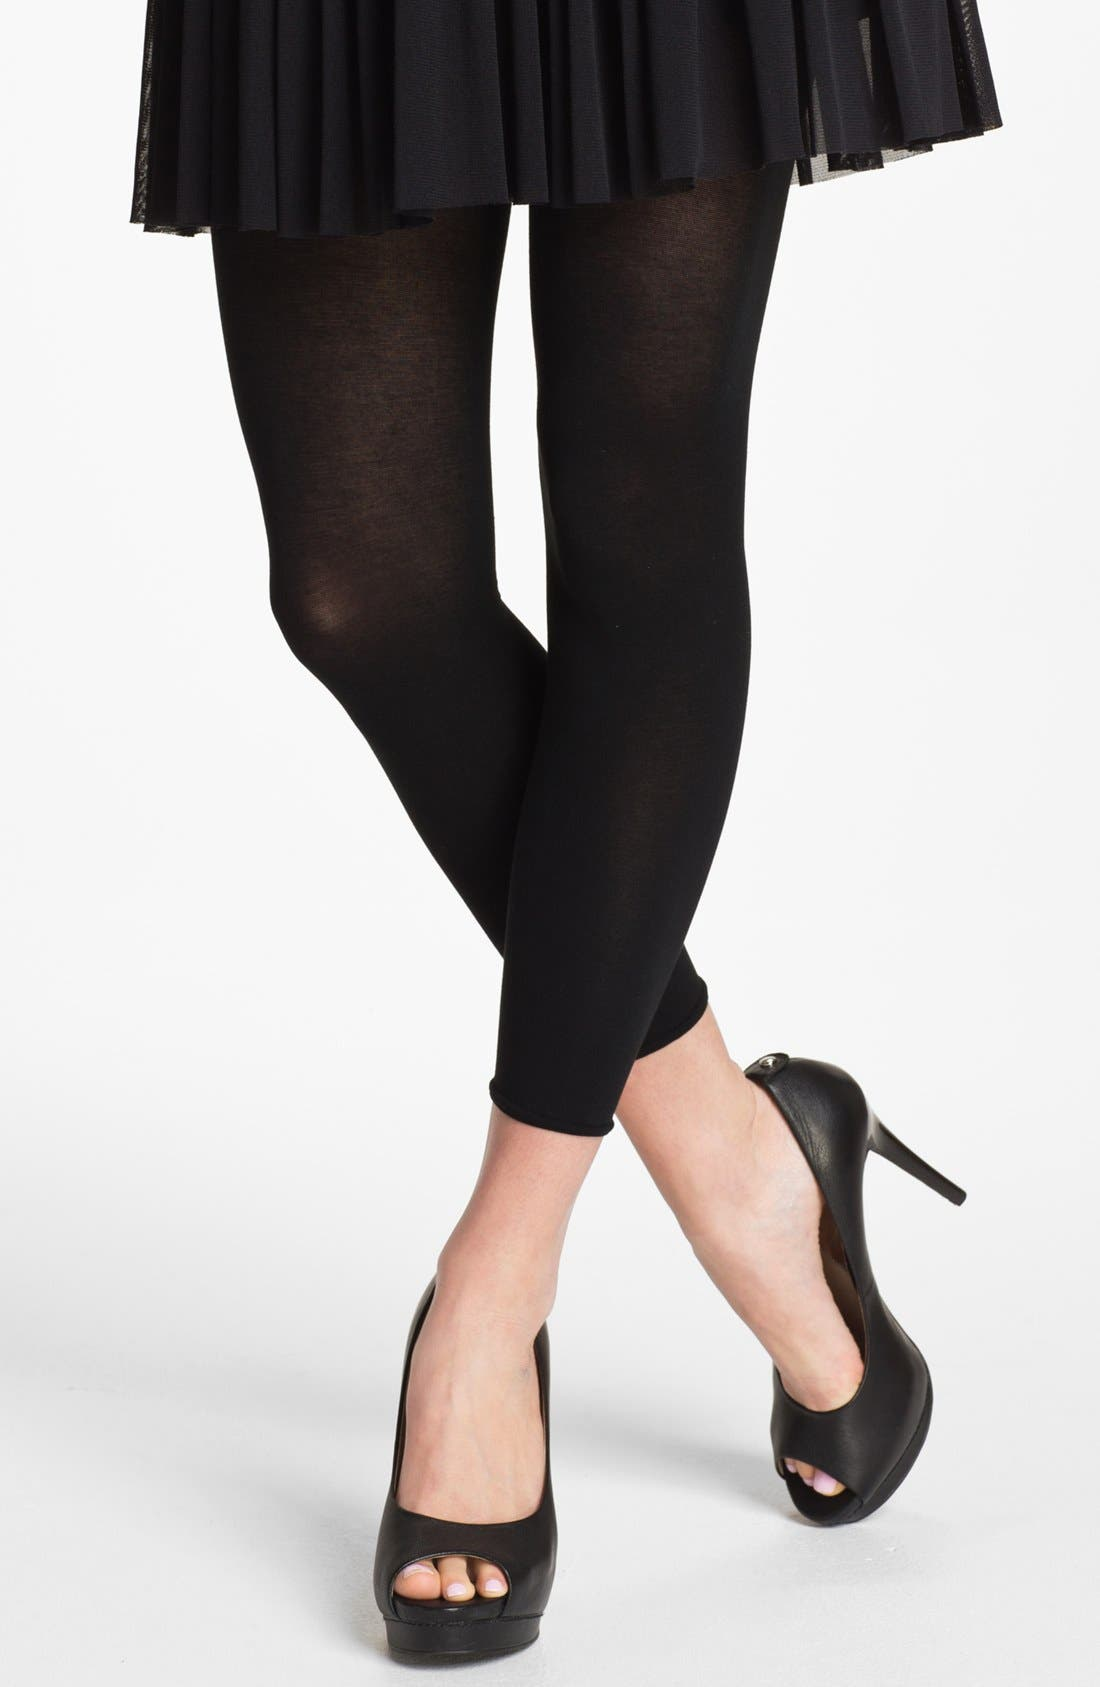 Alternate Image 1 Selected - DKNY 'Luxe Cotton' Footless Tights